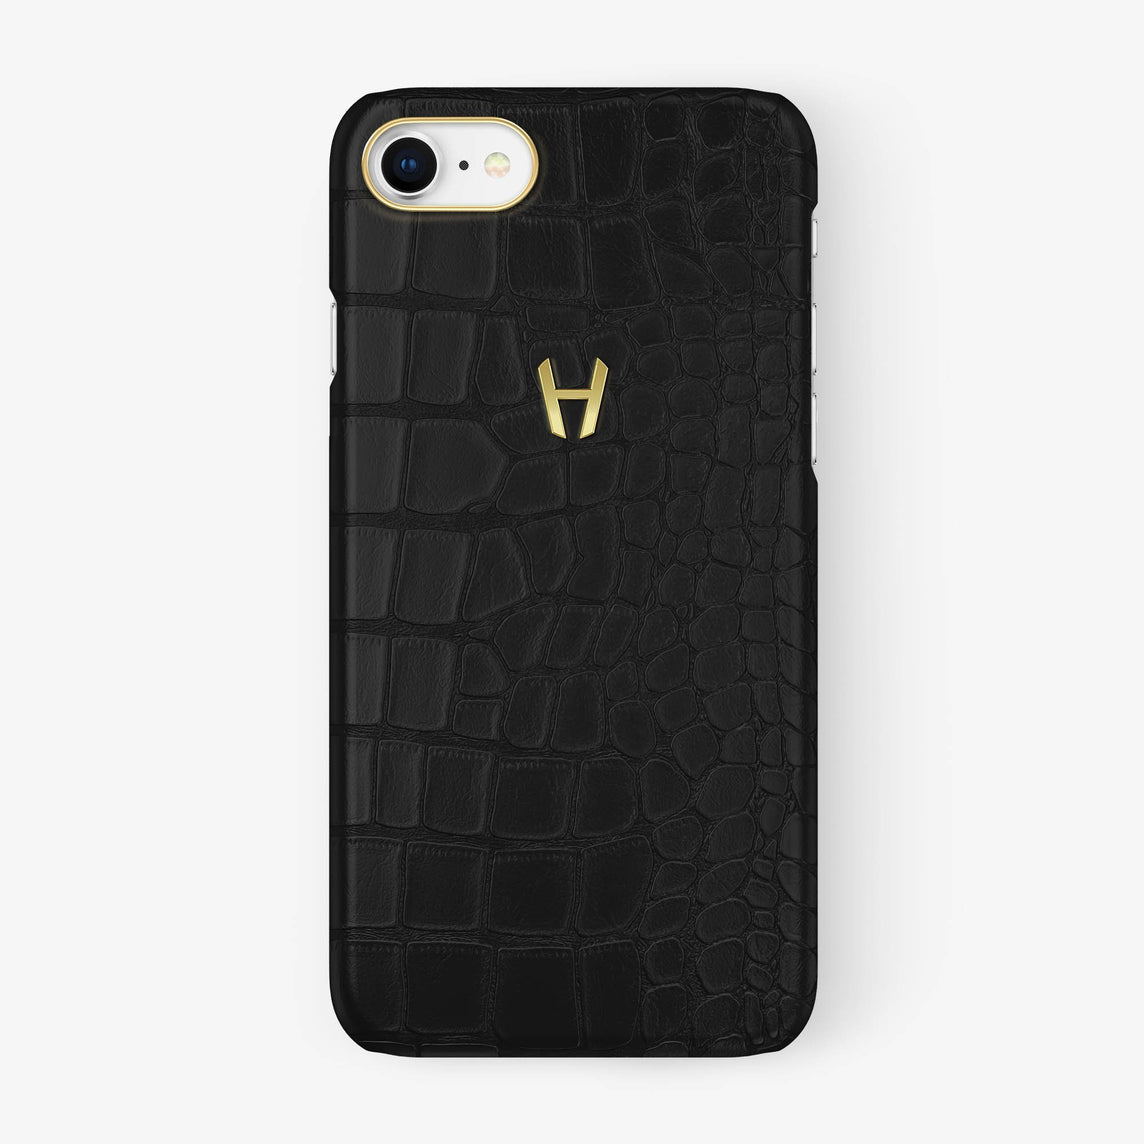 Alligator Case iPhone 7/8 | Phantom Black - Yellow Gold - Hadoro